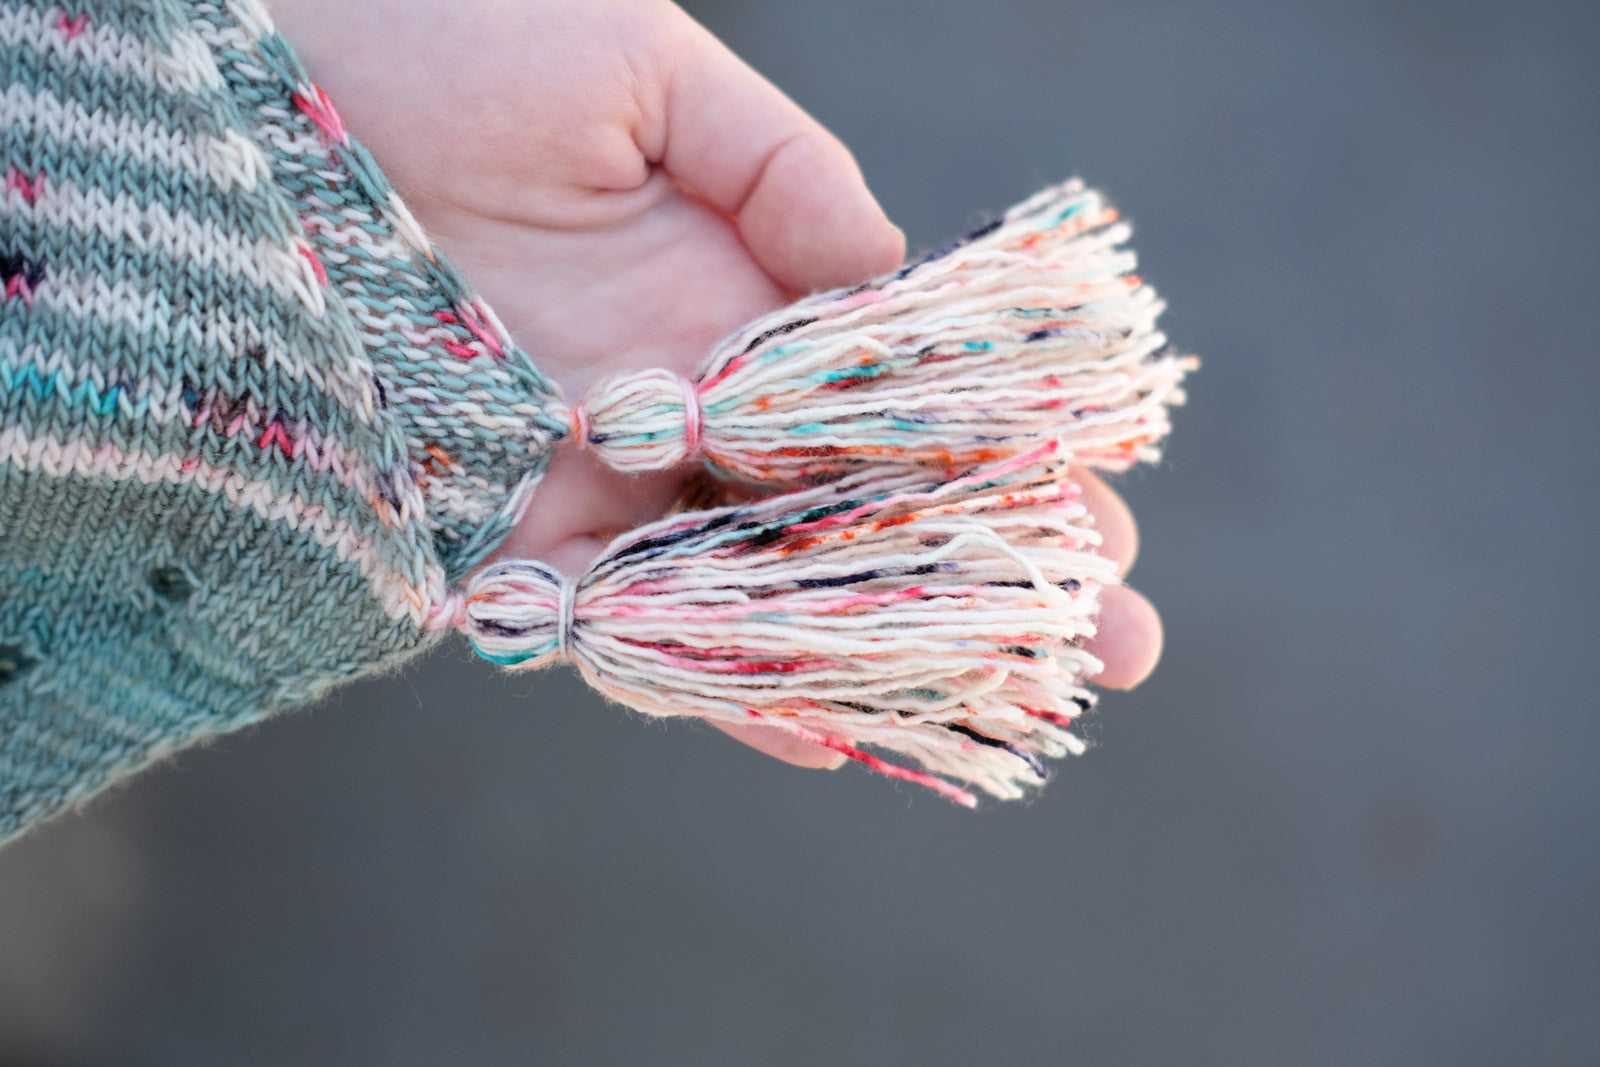 Tassles from the Purl Soho tutorial